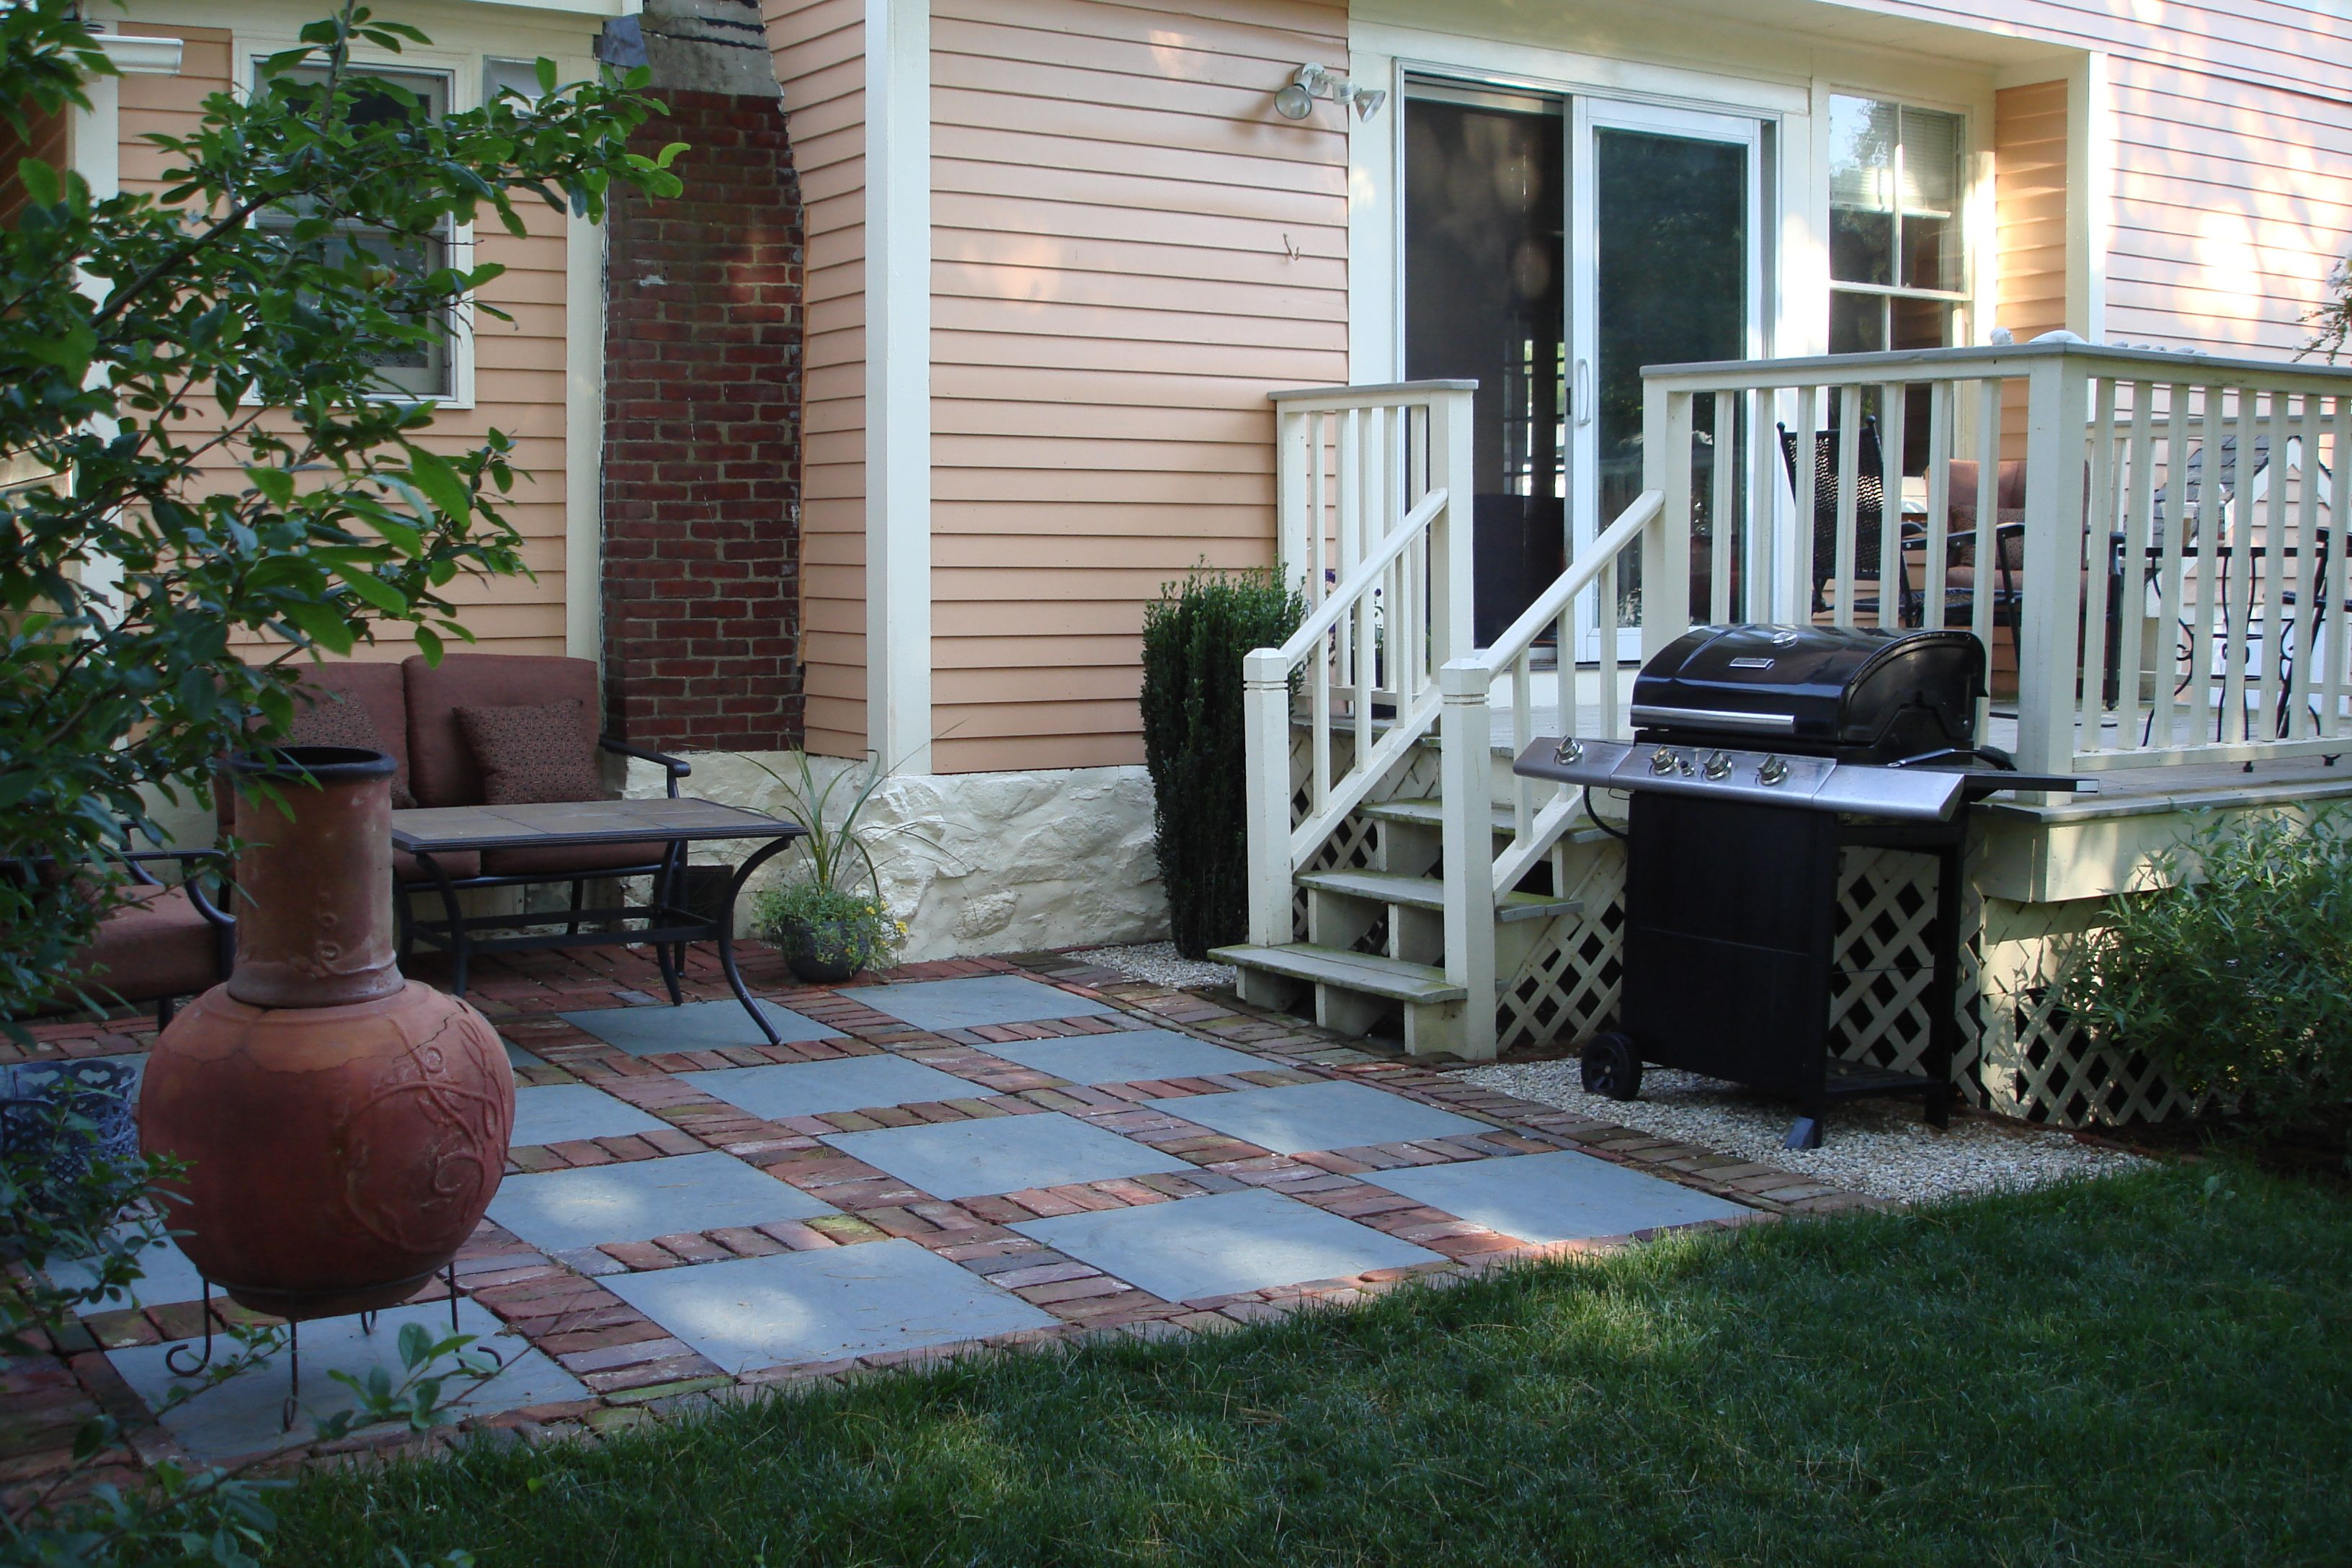 Backyard Patio Designs Small Yards patio design ideas garden idea patio design ideas design bookmark Backyard Patio Ideas Patio Paver Riveting Small Paver Patio Designs From Concrete Dark Grey Tile Also